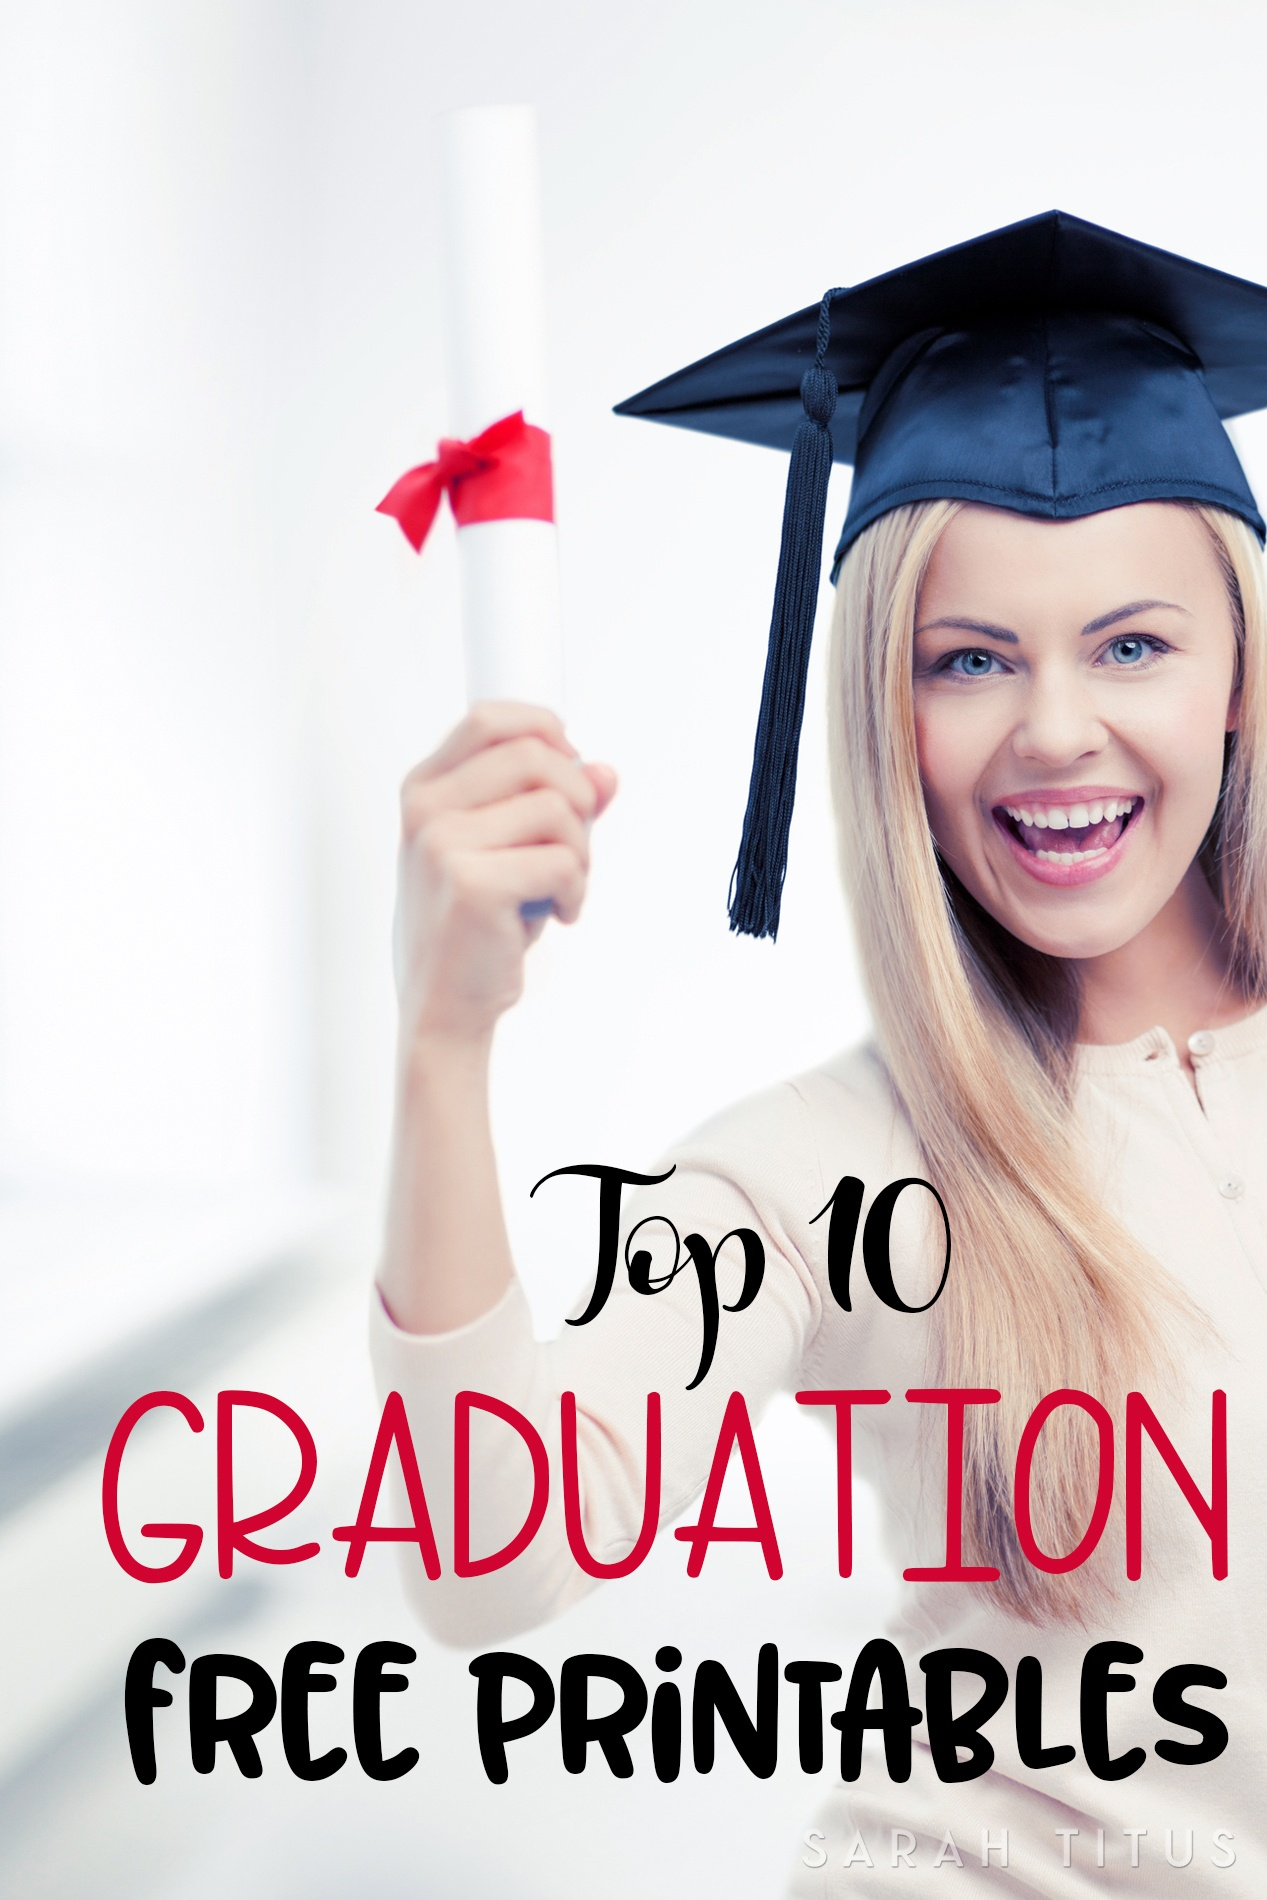 Top 10 Graduation Free Printables - Sarah Titus - Free Printable Graduation Signs